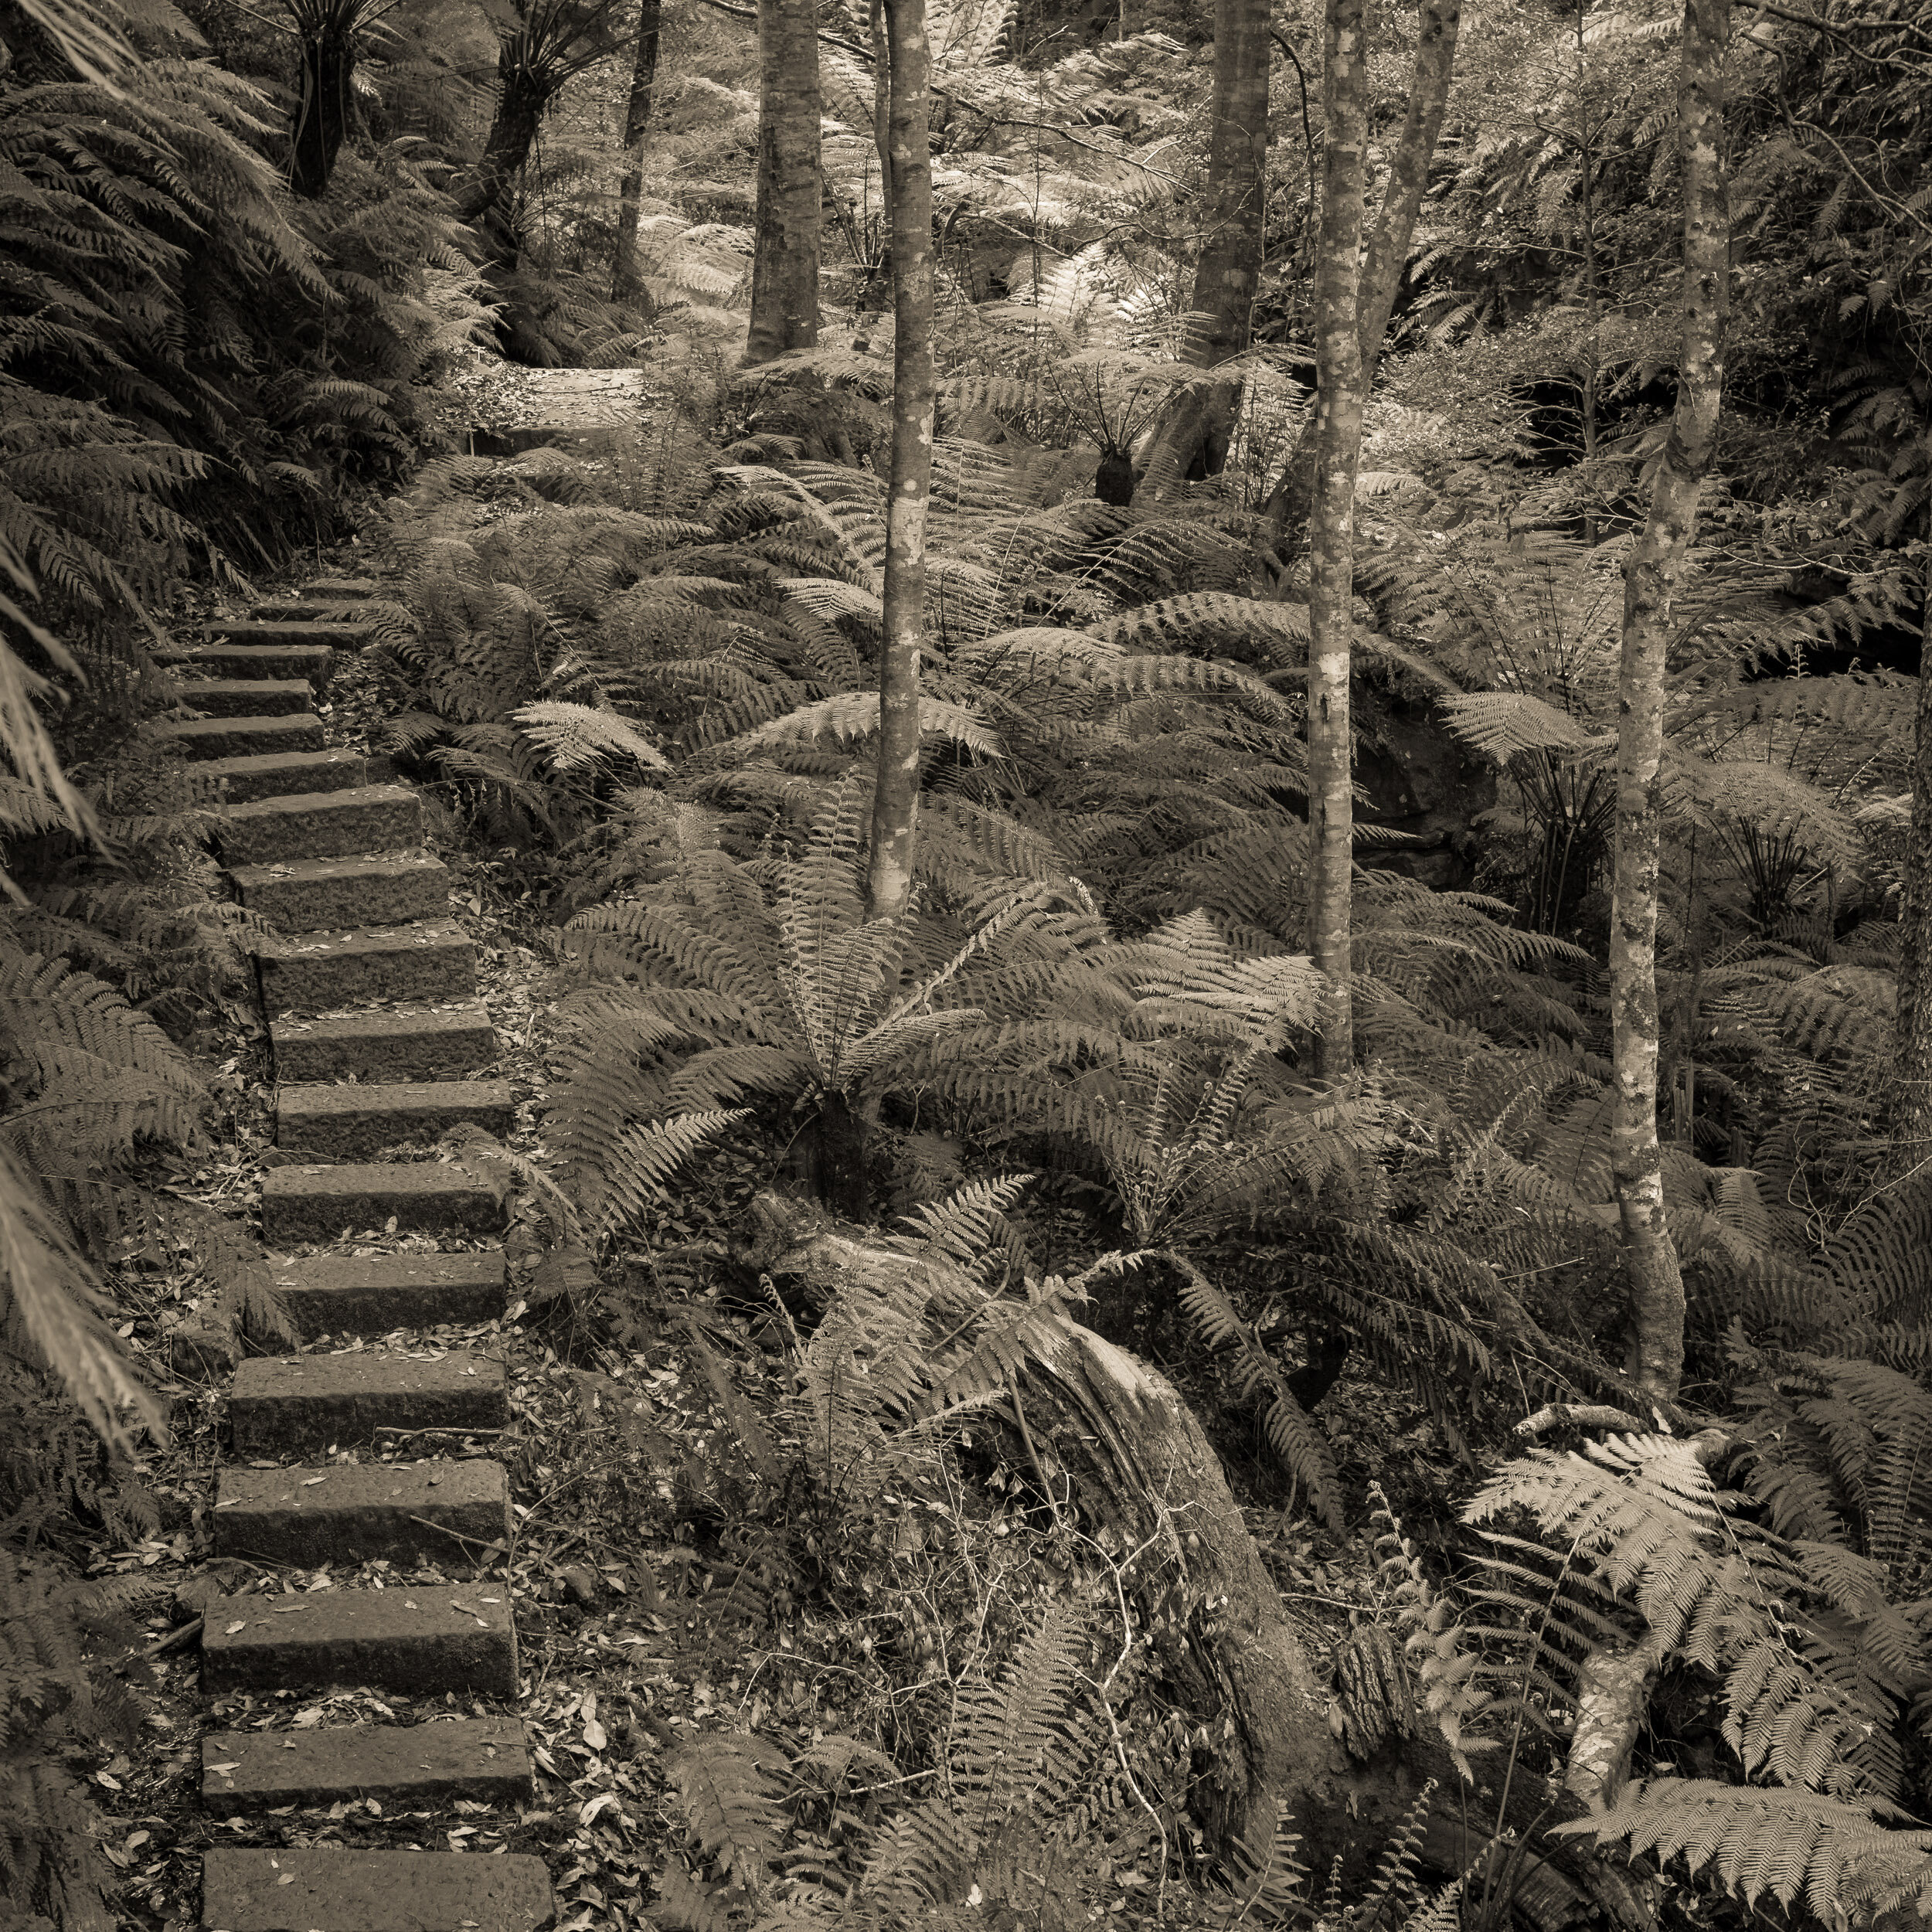 This photograph uses linear perspective to create a sense of depth. The steps are reducing in size as they recede into the distance. The small 'S' curve also helps this along.